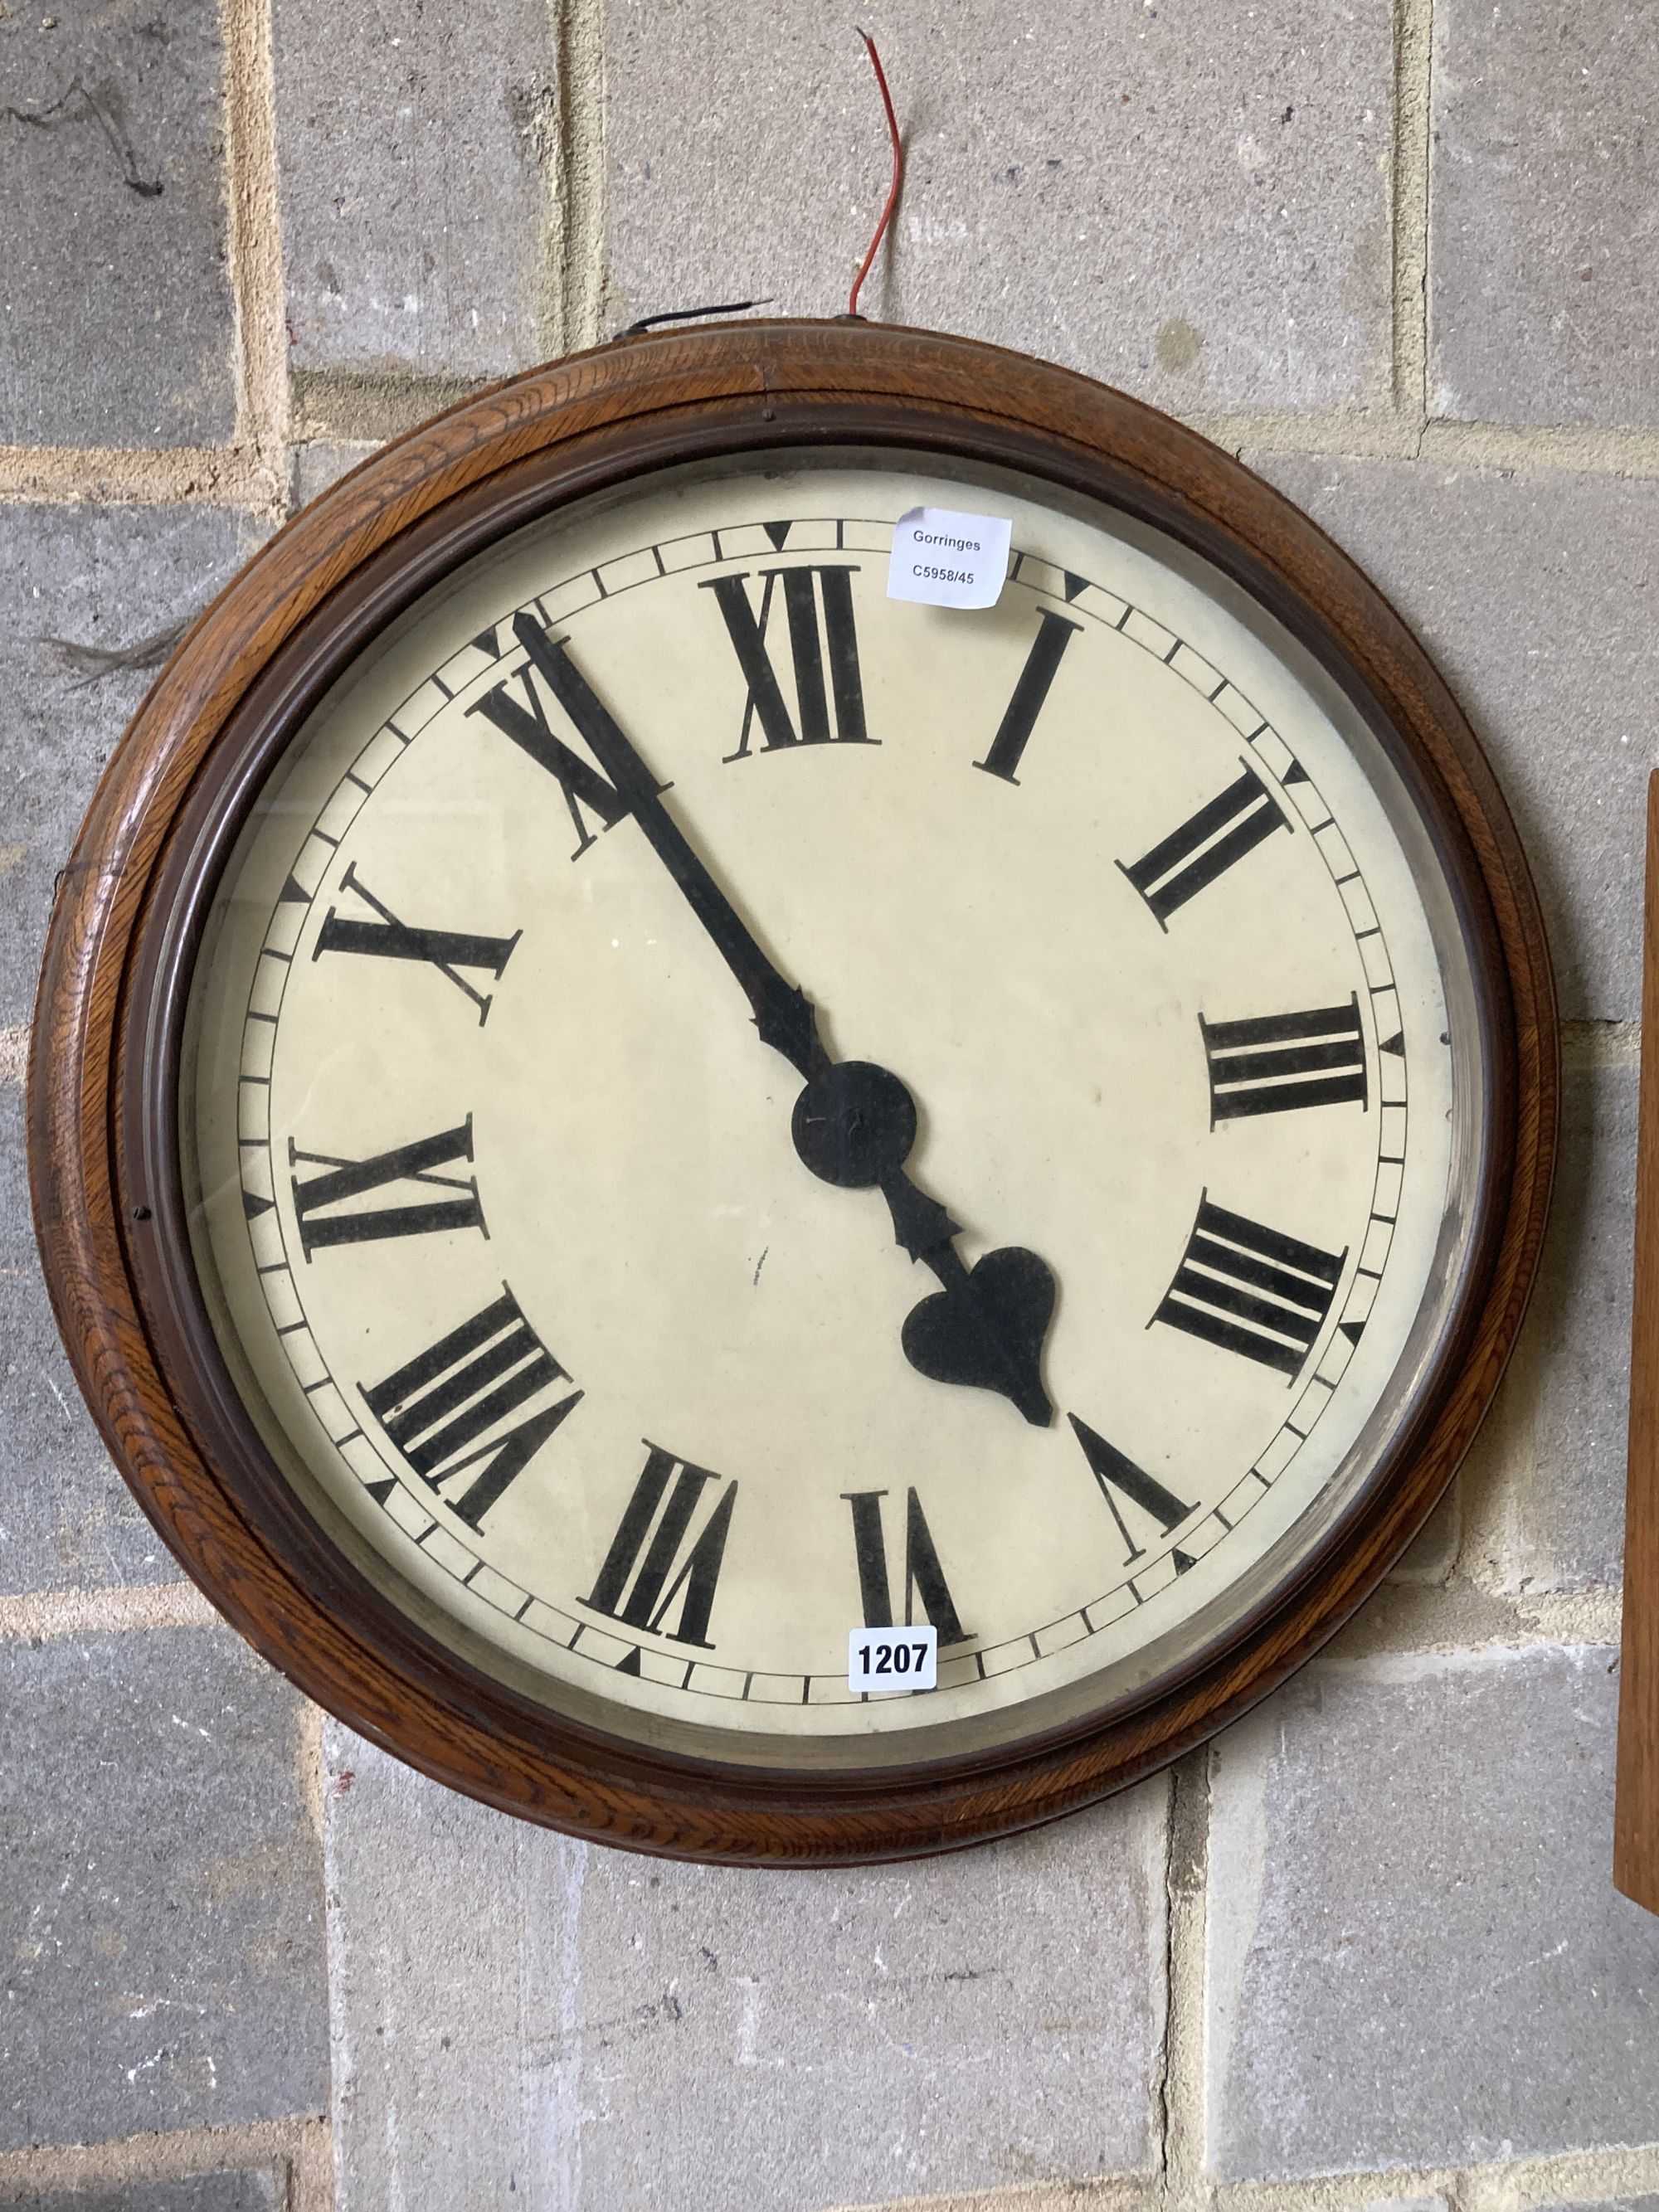 An oak cased electric slave dial timepiece